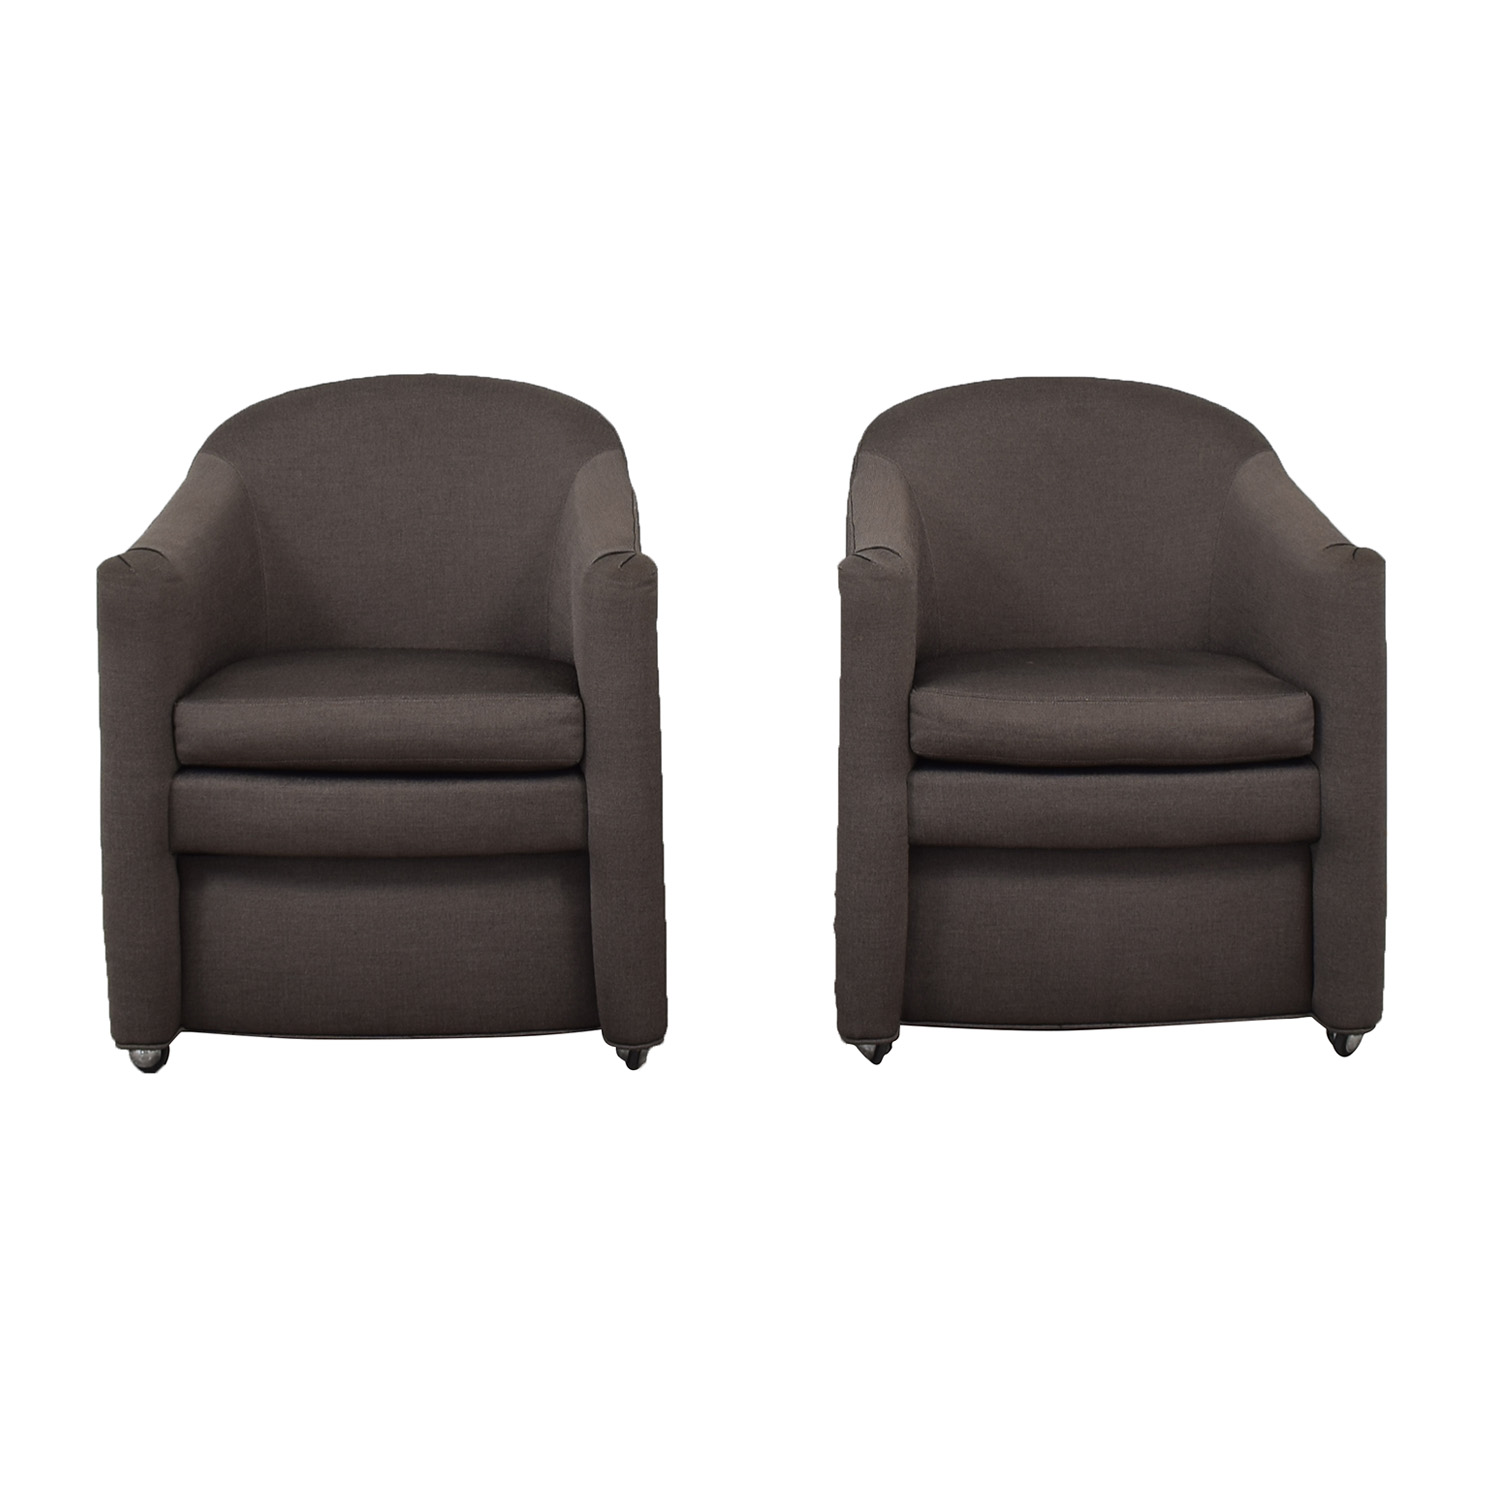 Kravet Kravet Grey Wianno Accent Chairs price